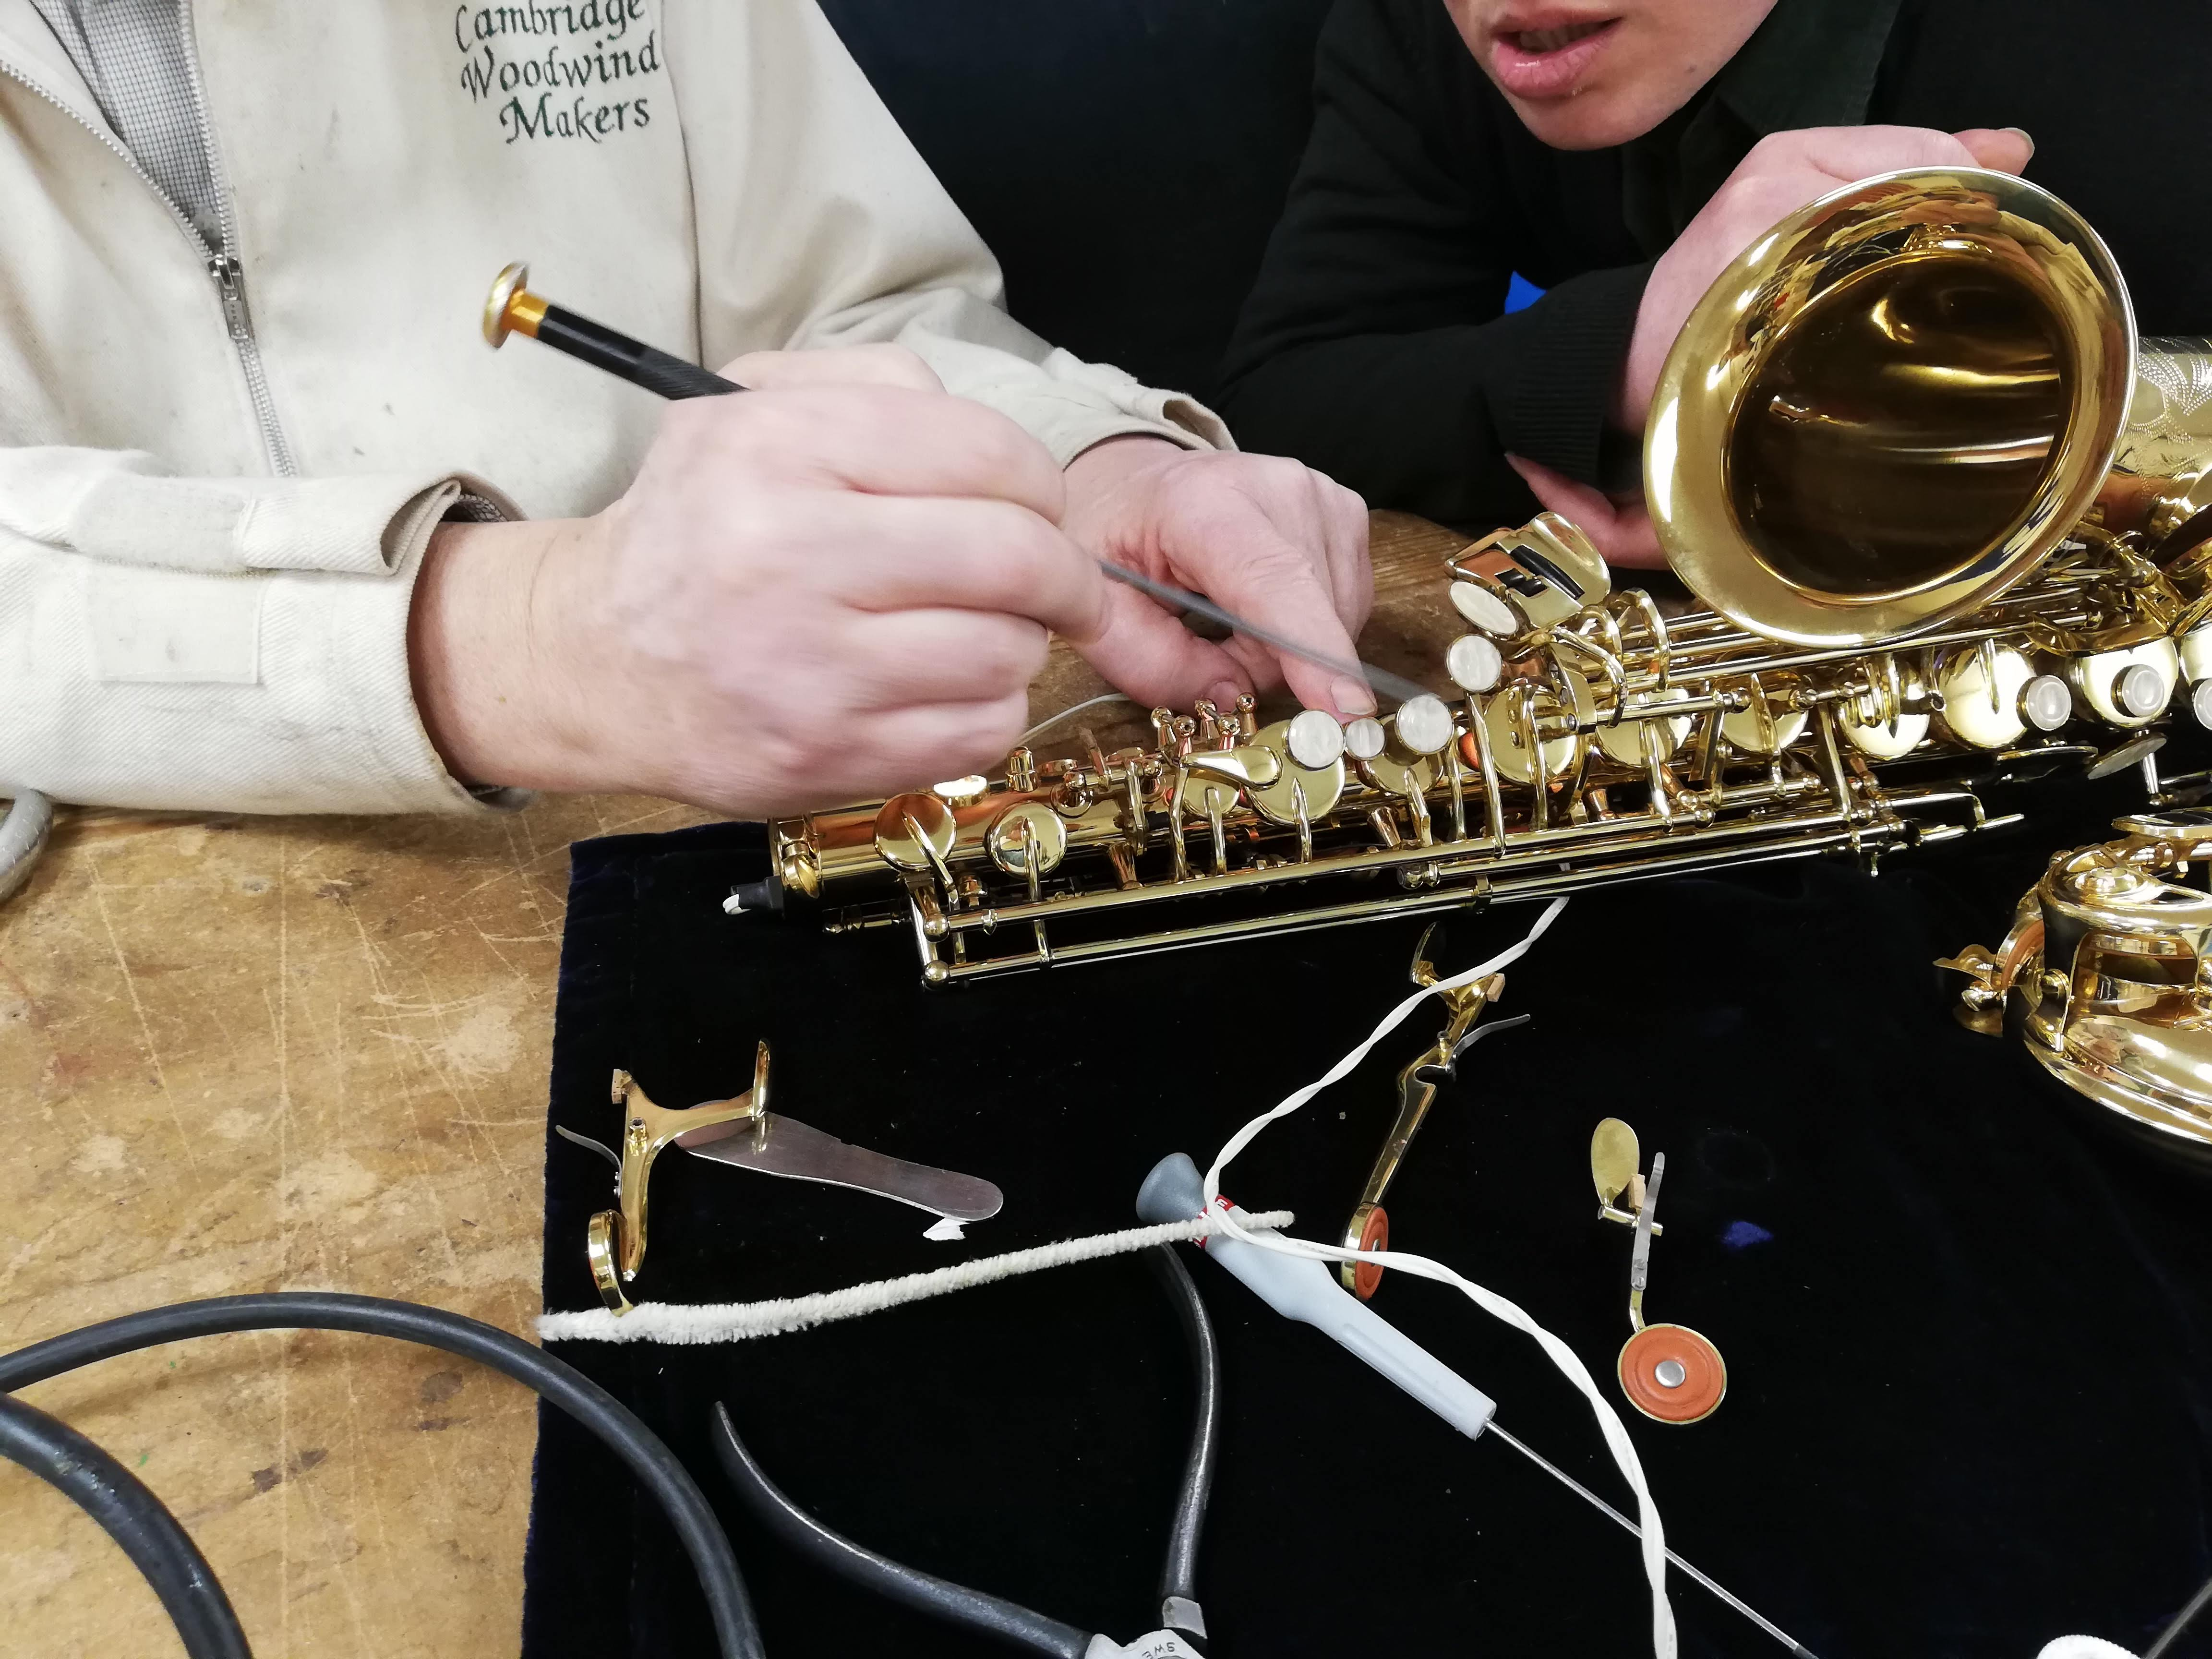 Repair Instruments with Cambridge Woodwind Makers